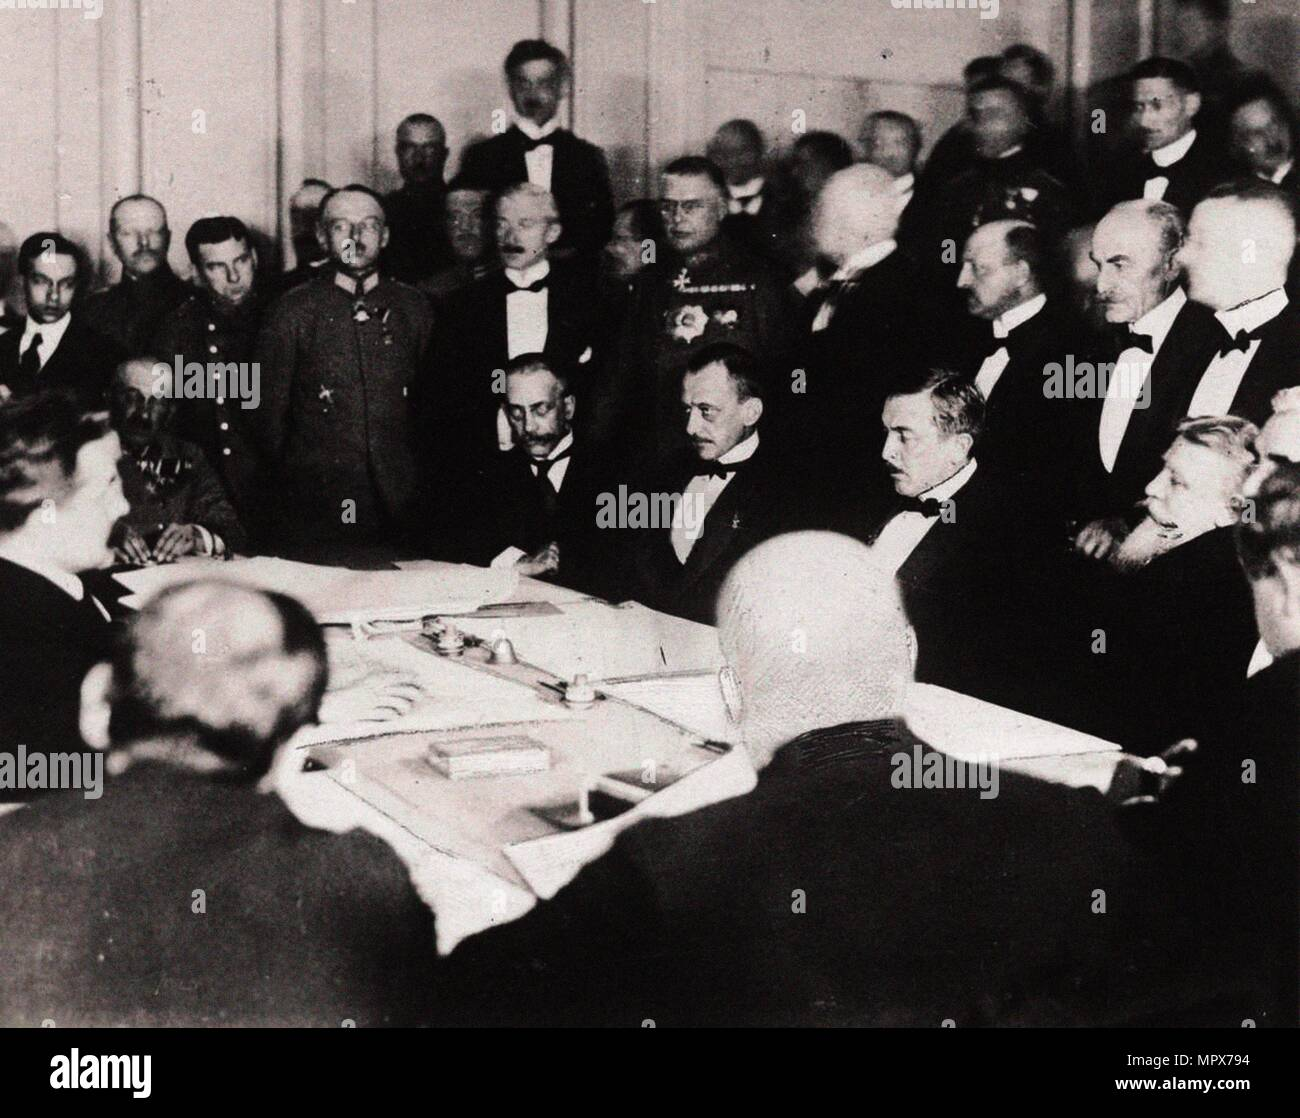 The signing of the Treaty of Brest-Litovsk in the fortress of Brest-Litovsk, March 3, 1918, 1918. - Stock Image